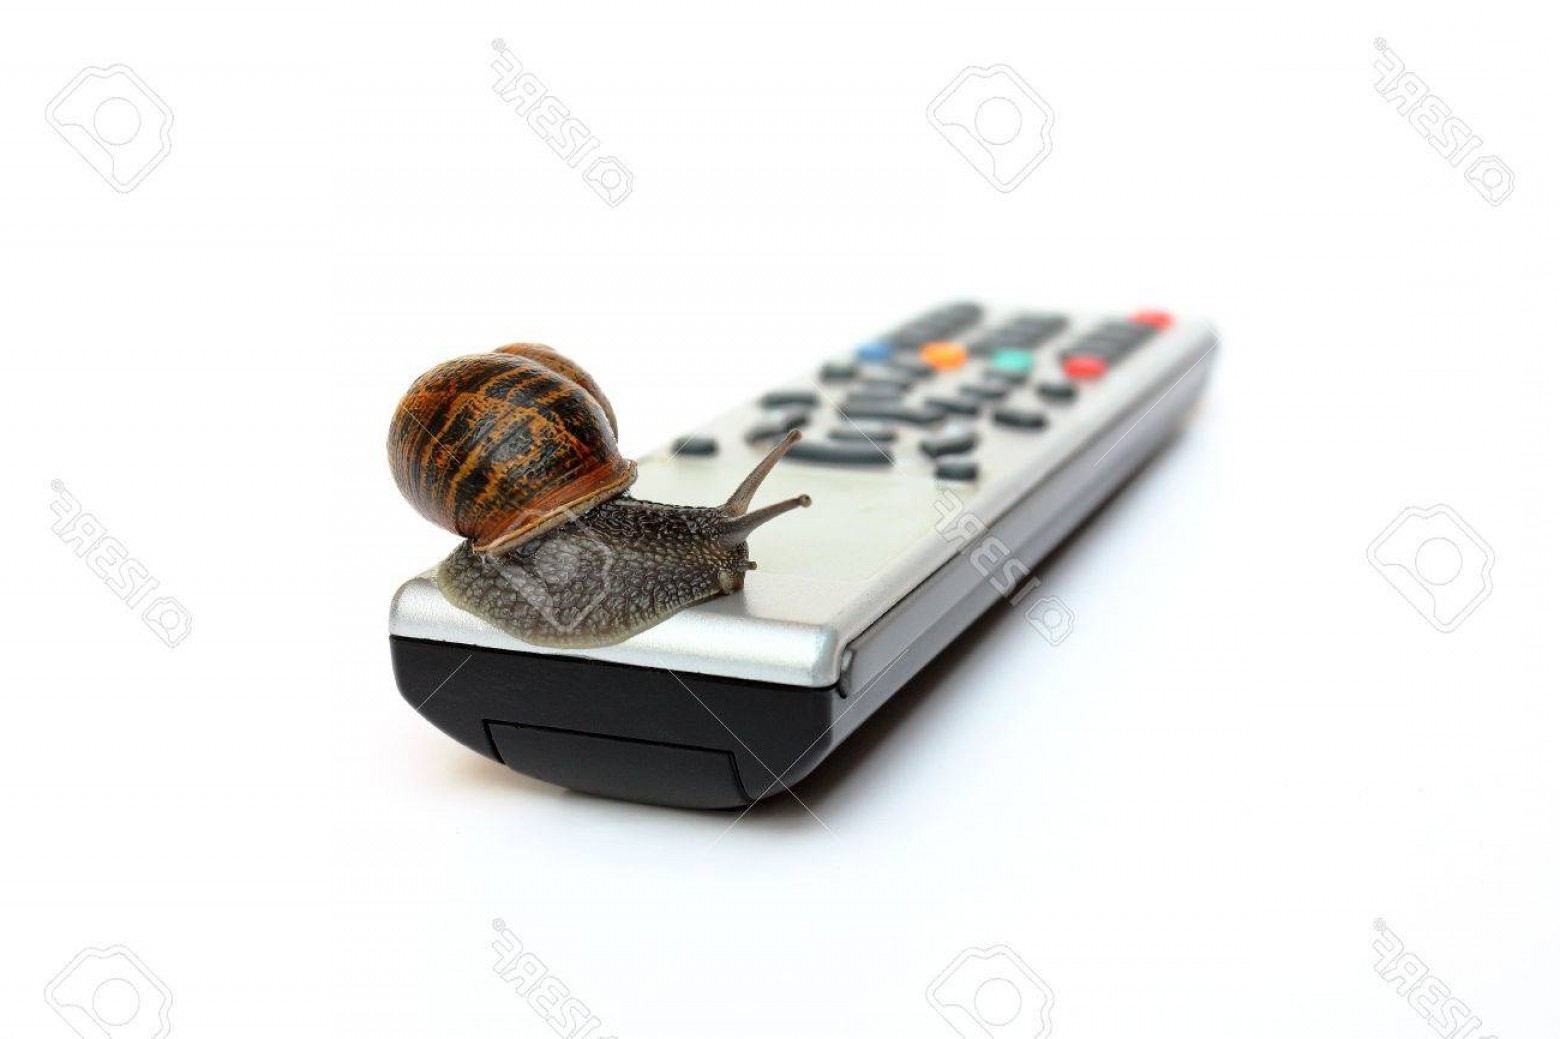 Helix Vectors TV: Photocommon Garden Snail Helix Aspersa On Tv Remote Control Isolated